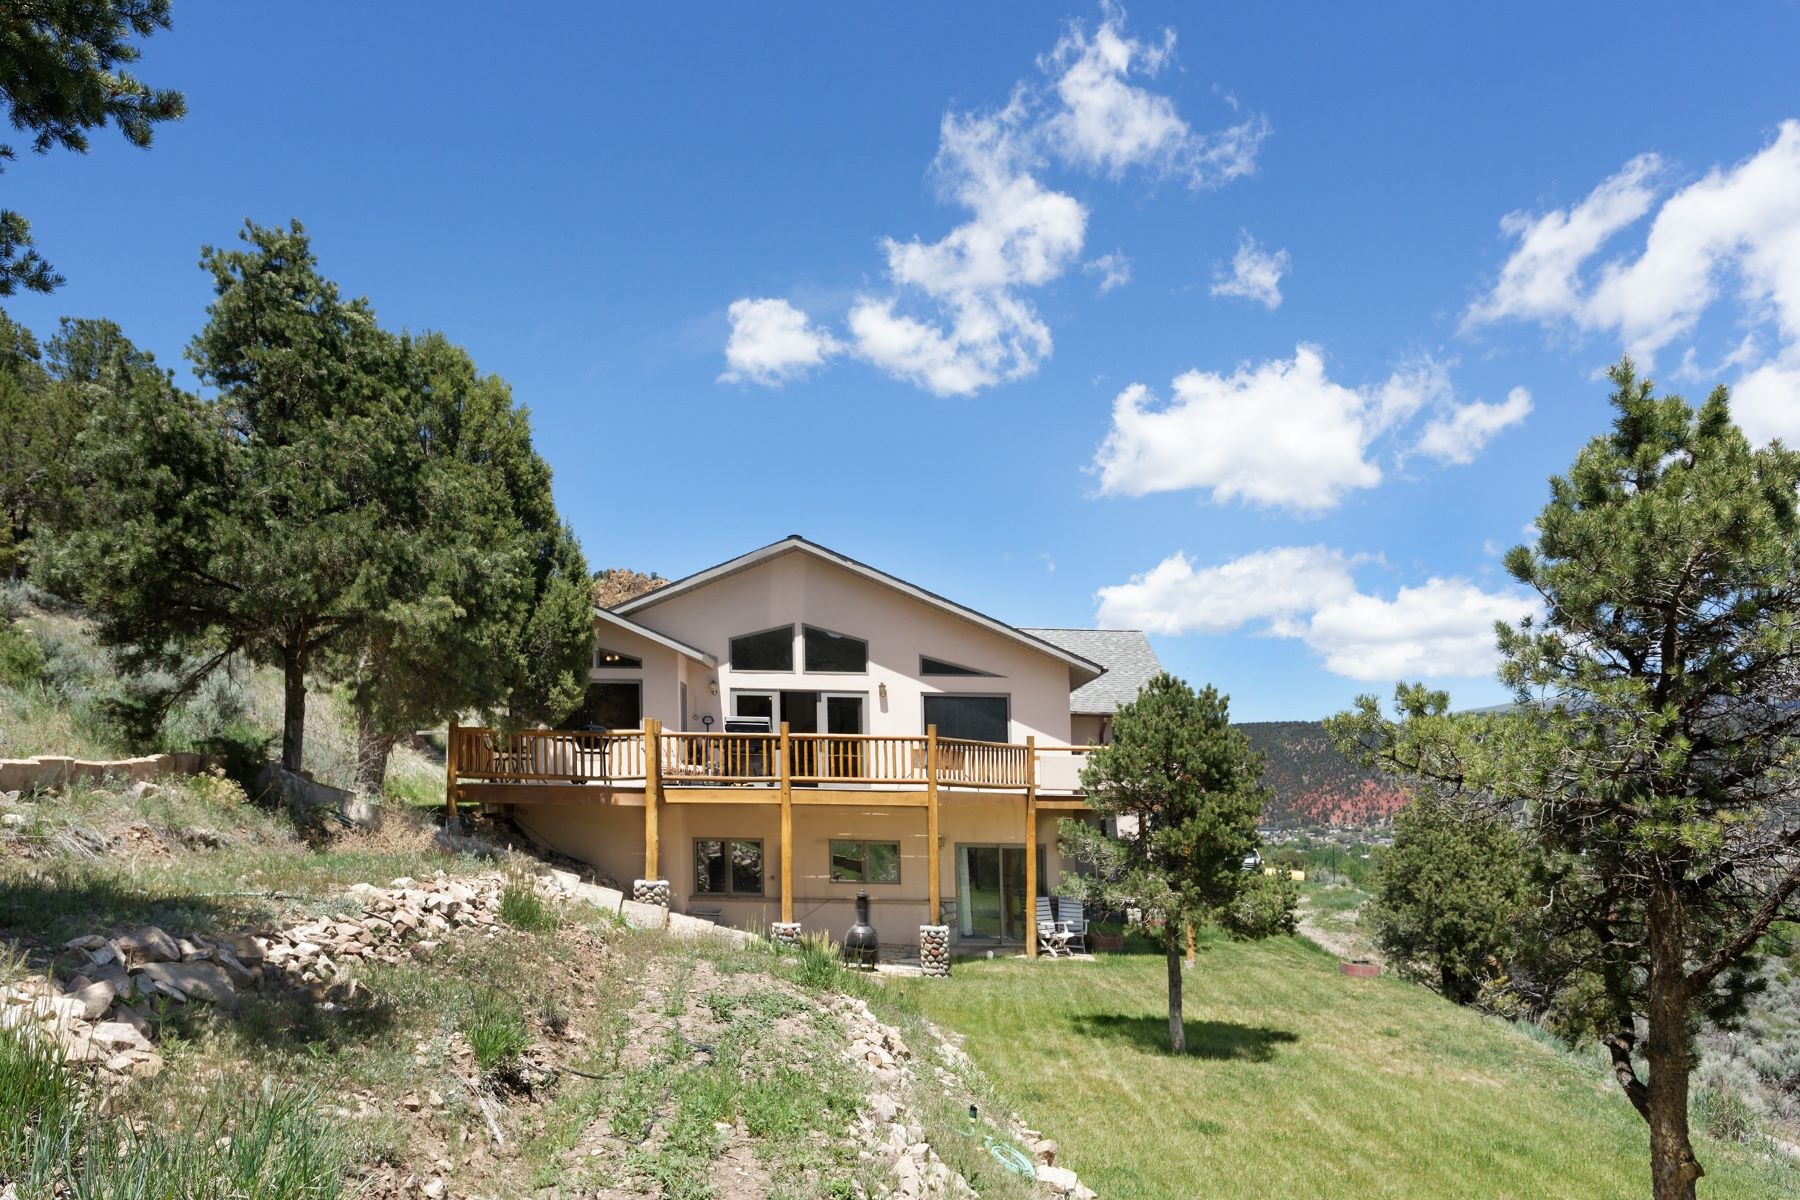 Single Family Home for Active at Beautiful Custom Home 1853 County Road 109 Glenwood Springs, Colorado 81601 United States